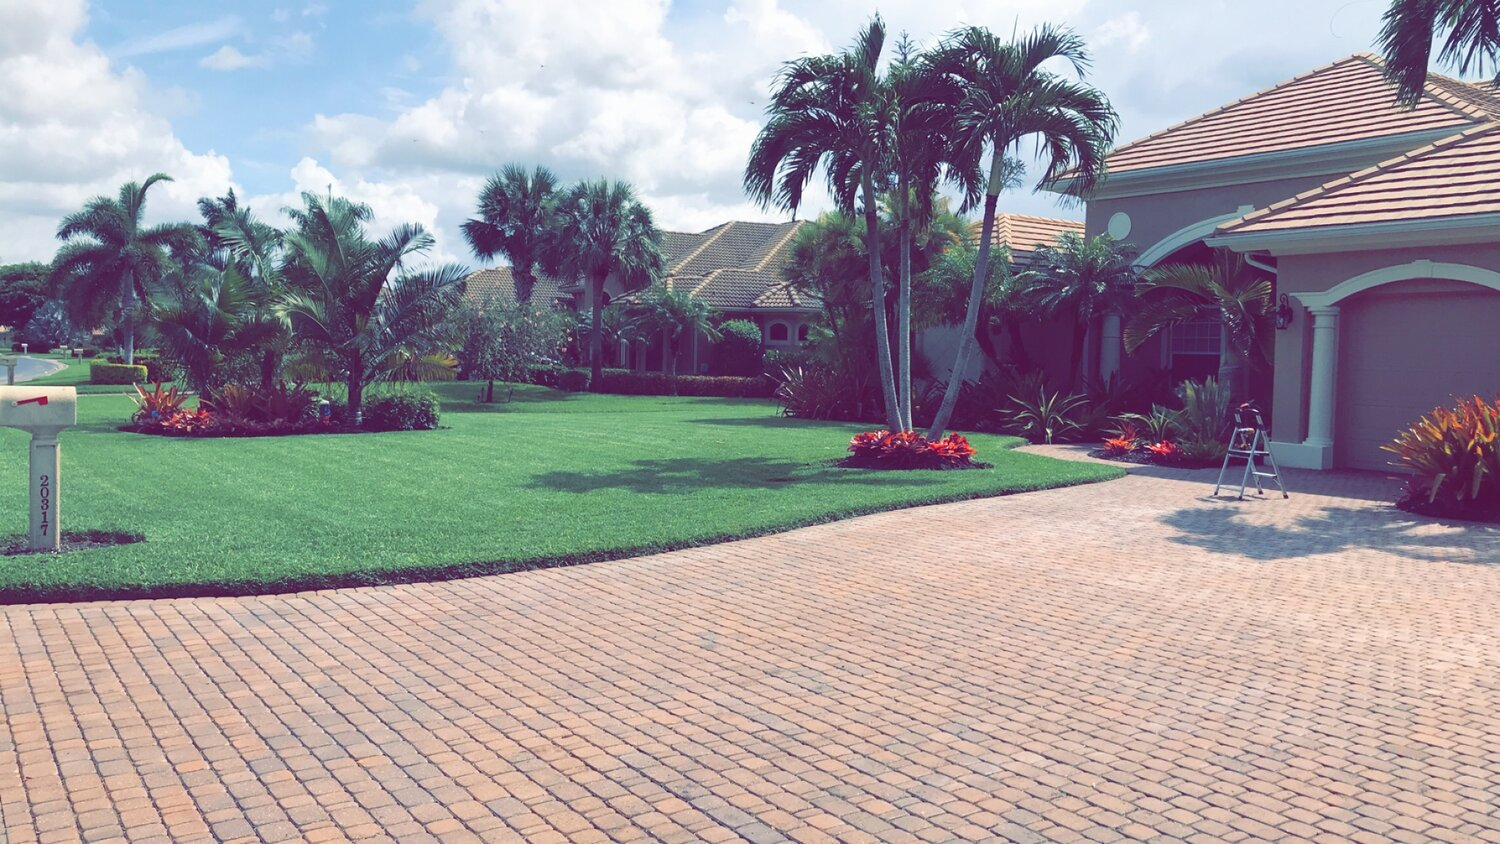 Home Fort Myers Lawn Care And Landscaping Mowing And Landscaping Services